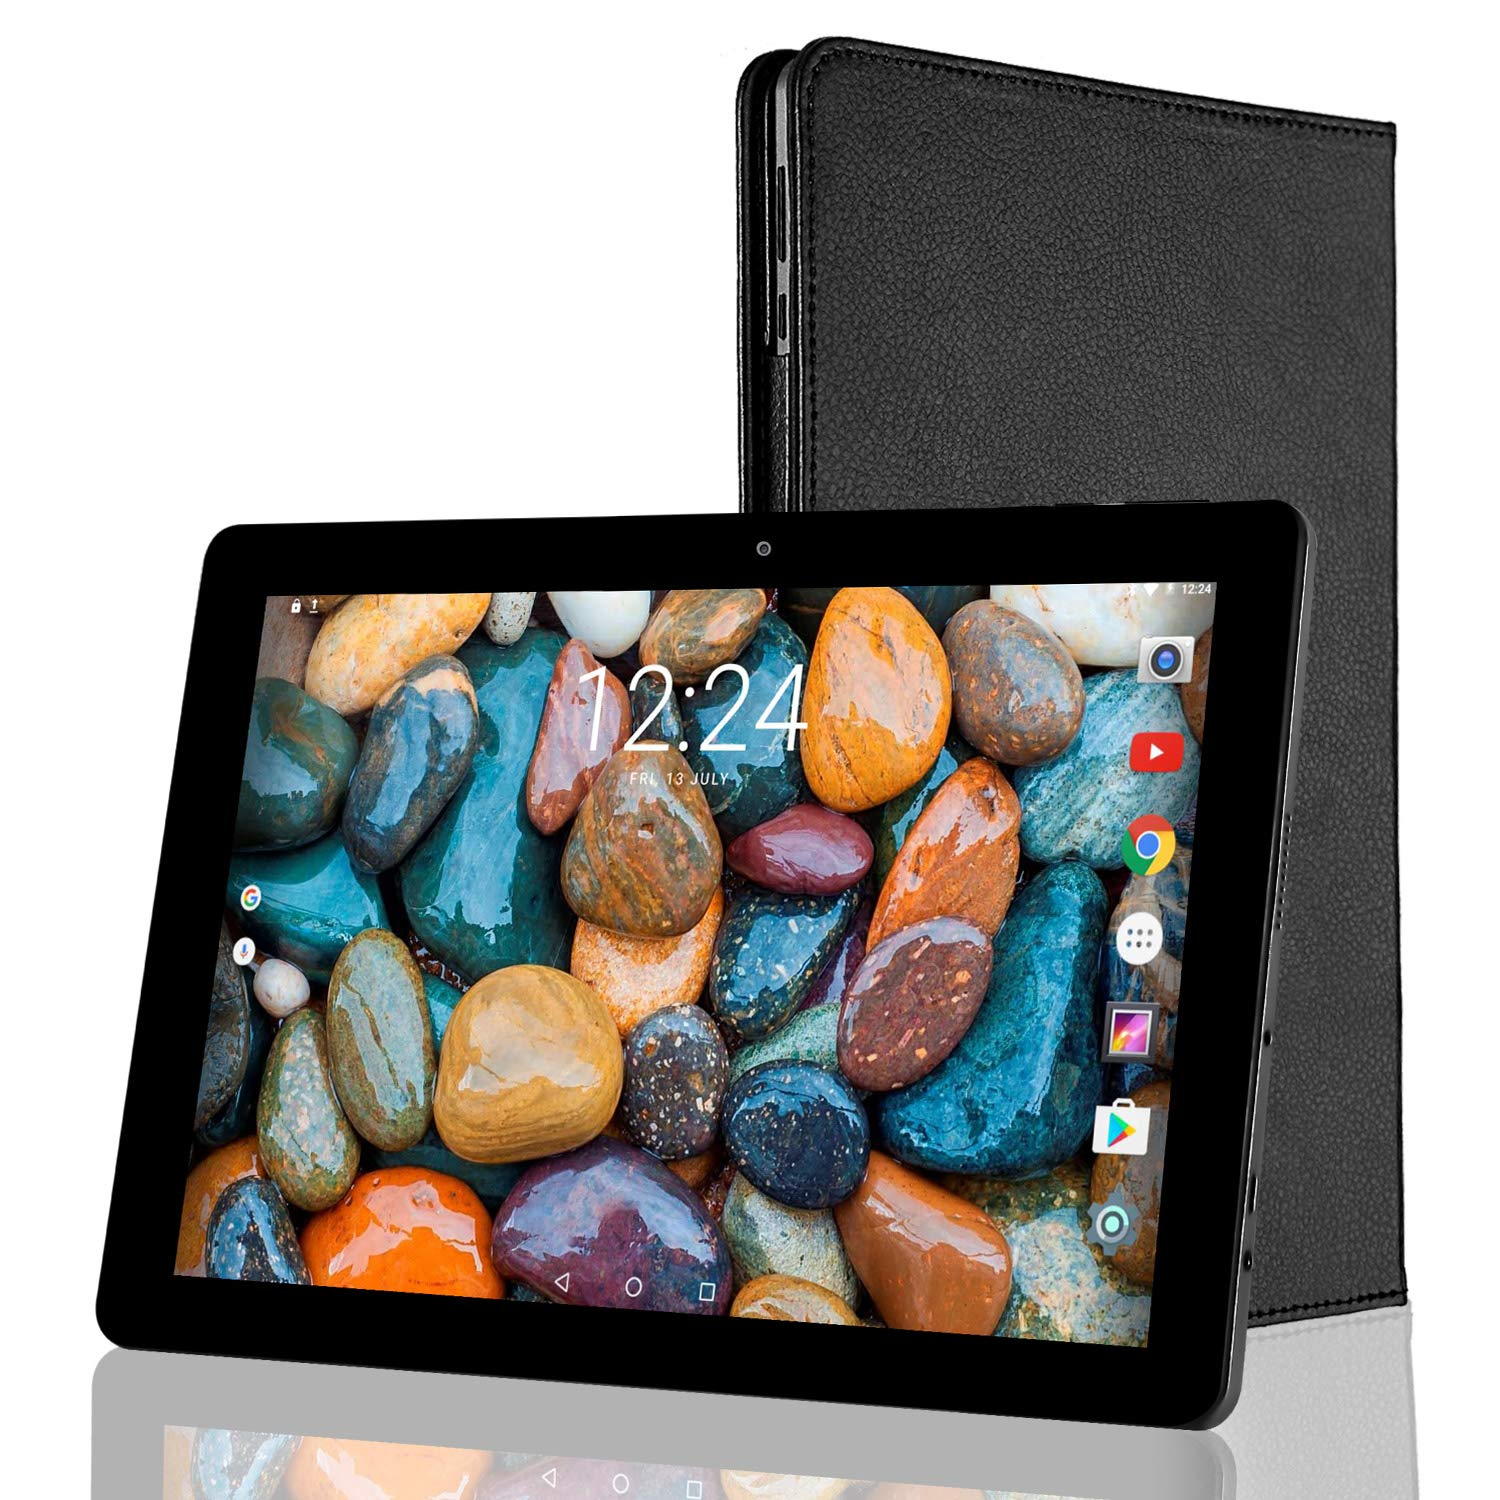 Winnovo VTab 10-inch Android WiFi Tablet - Best Reviews Tablet